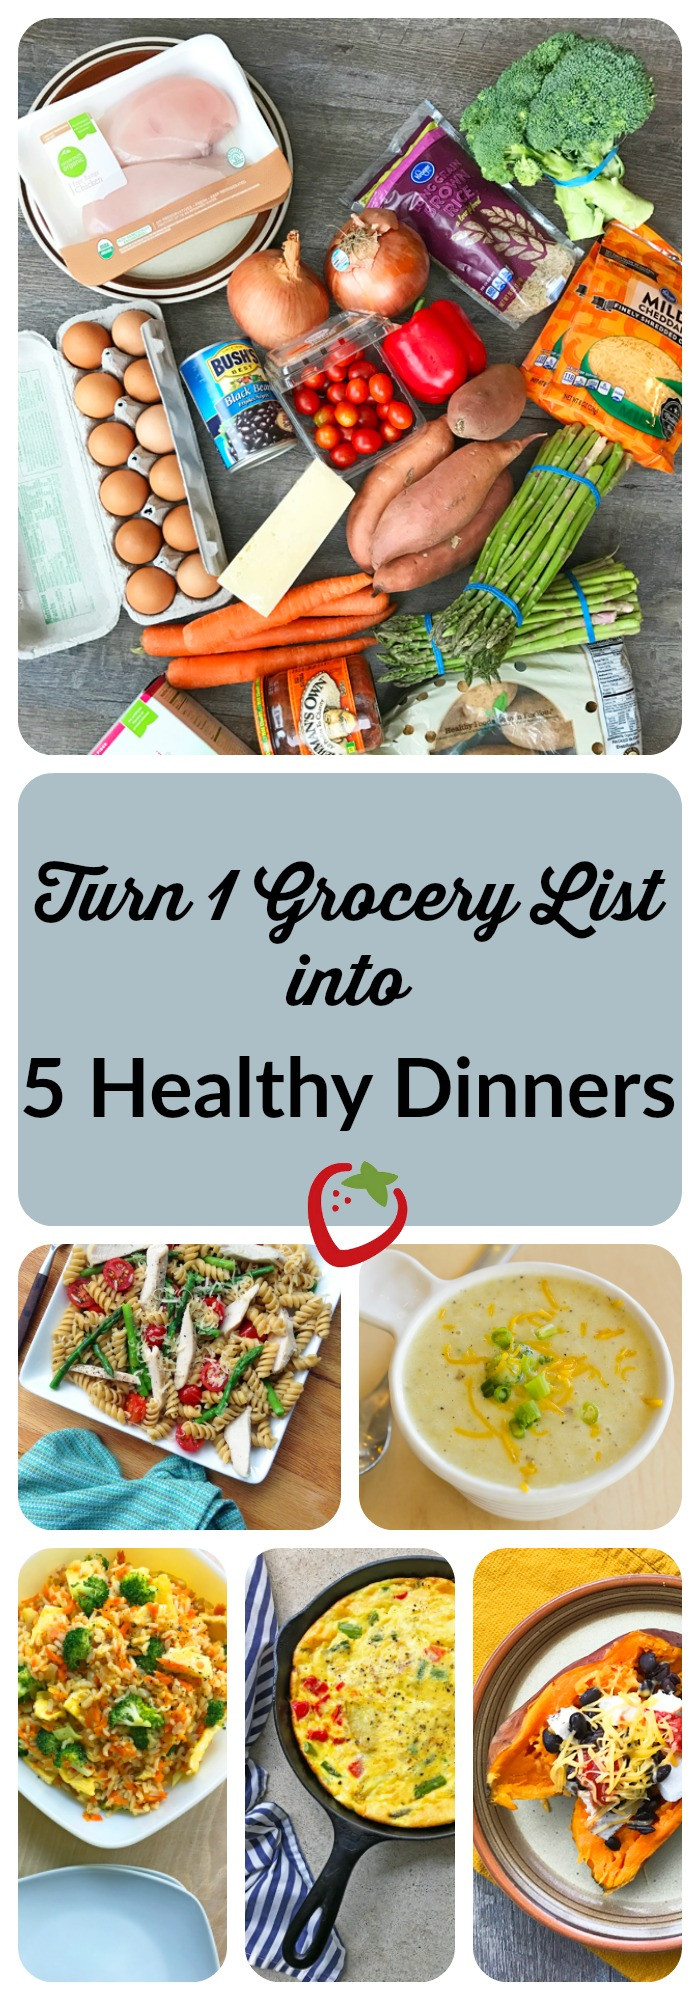 List Of Healthy Dinners  Turn e Grocery List into Five Healthy Dinners